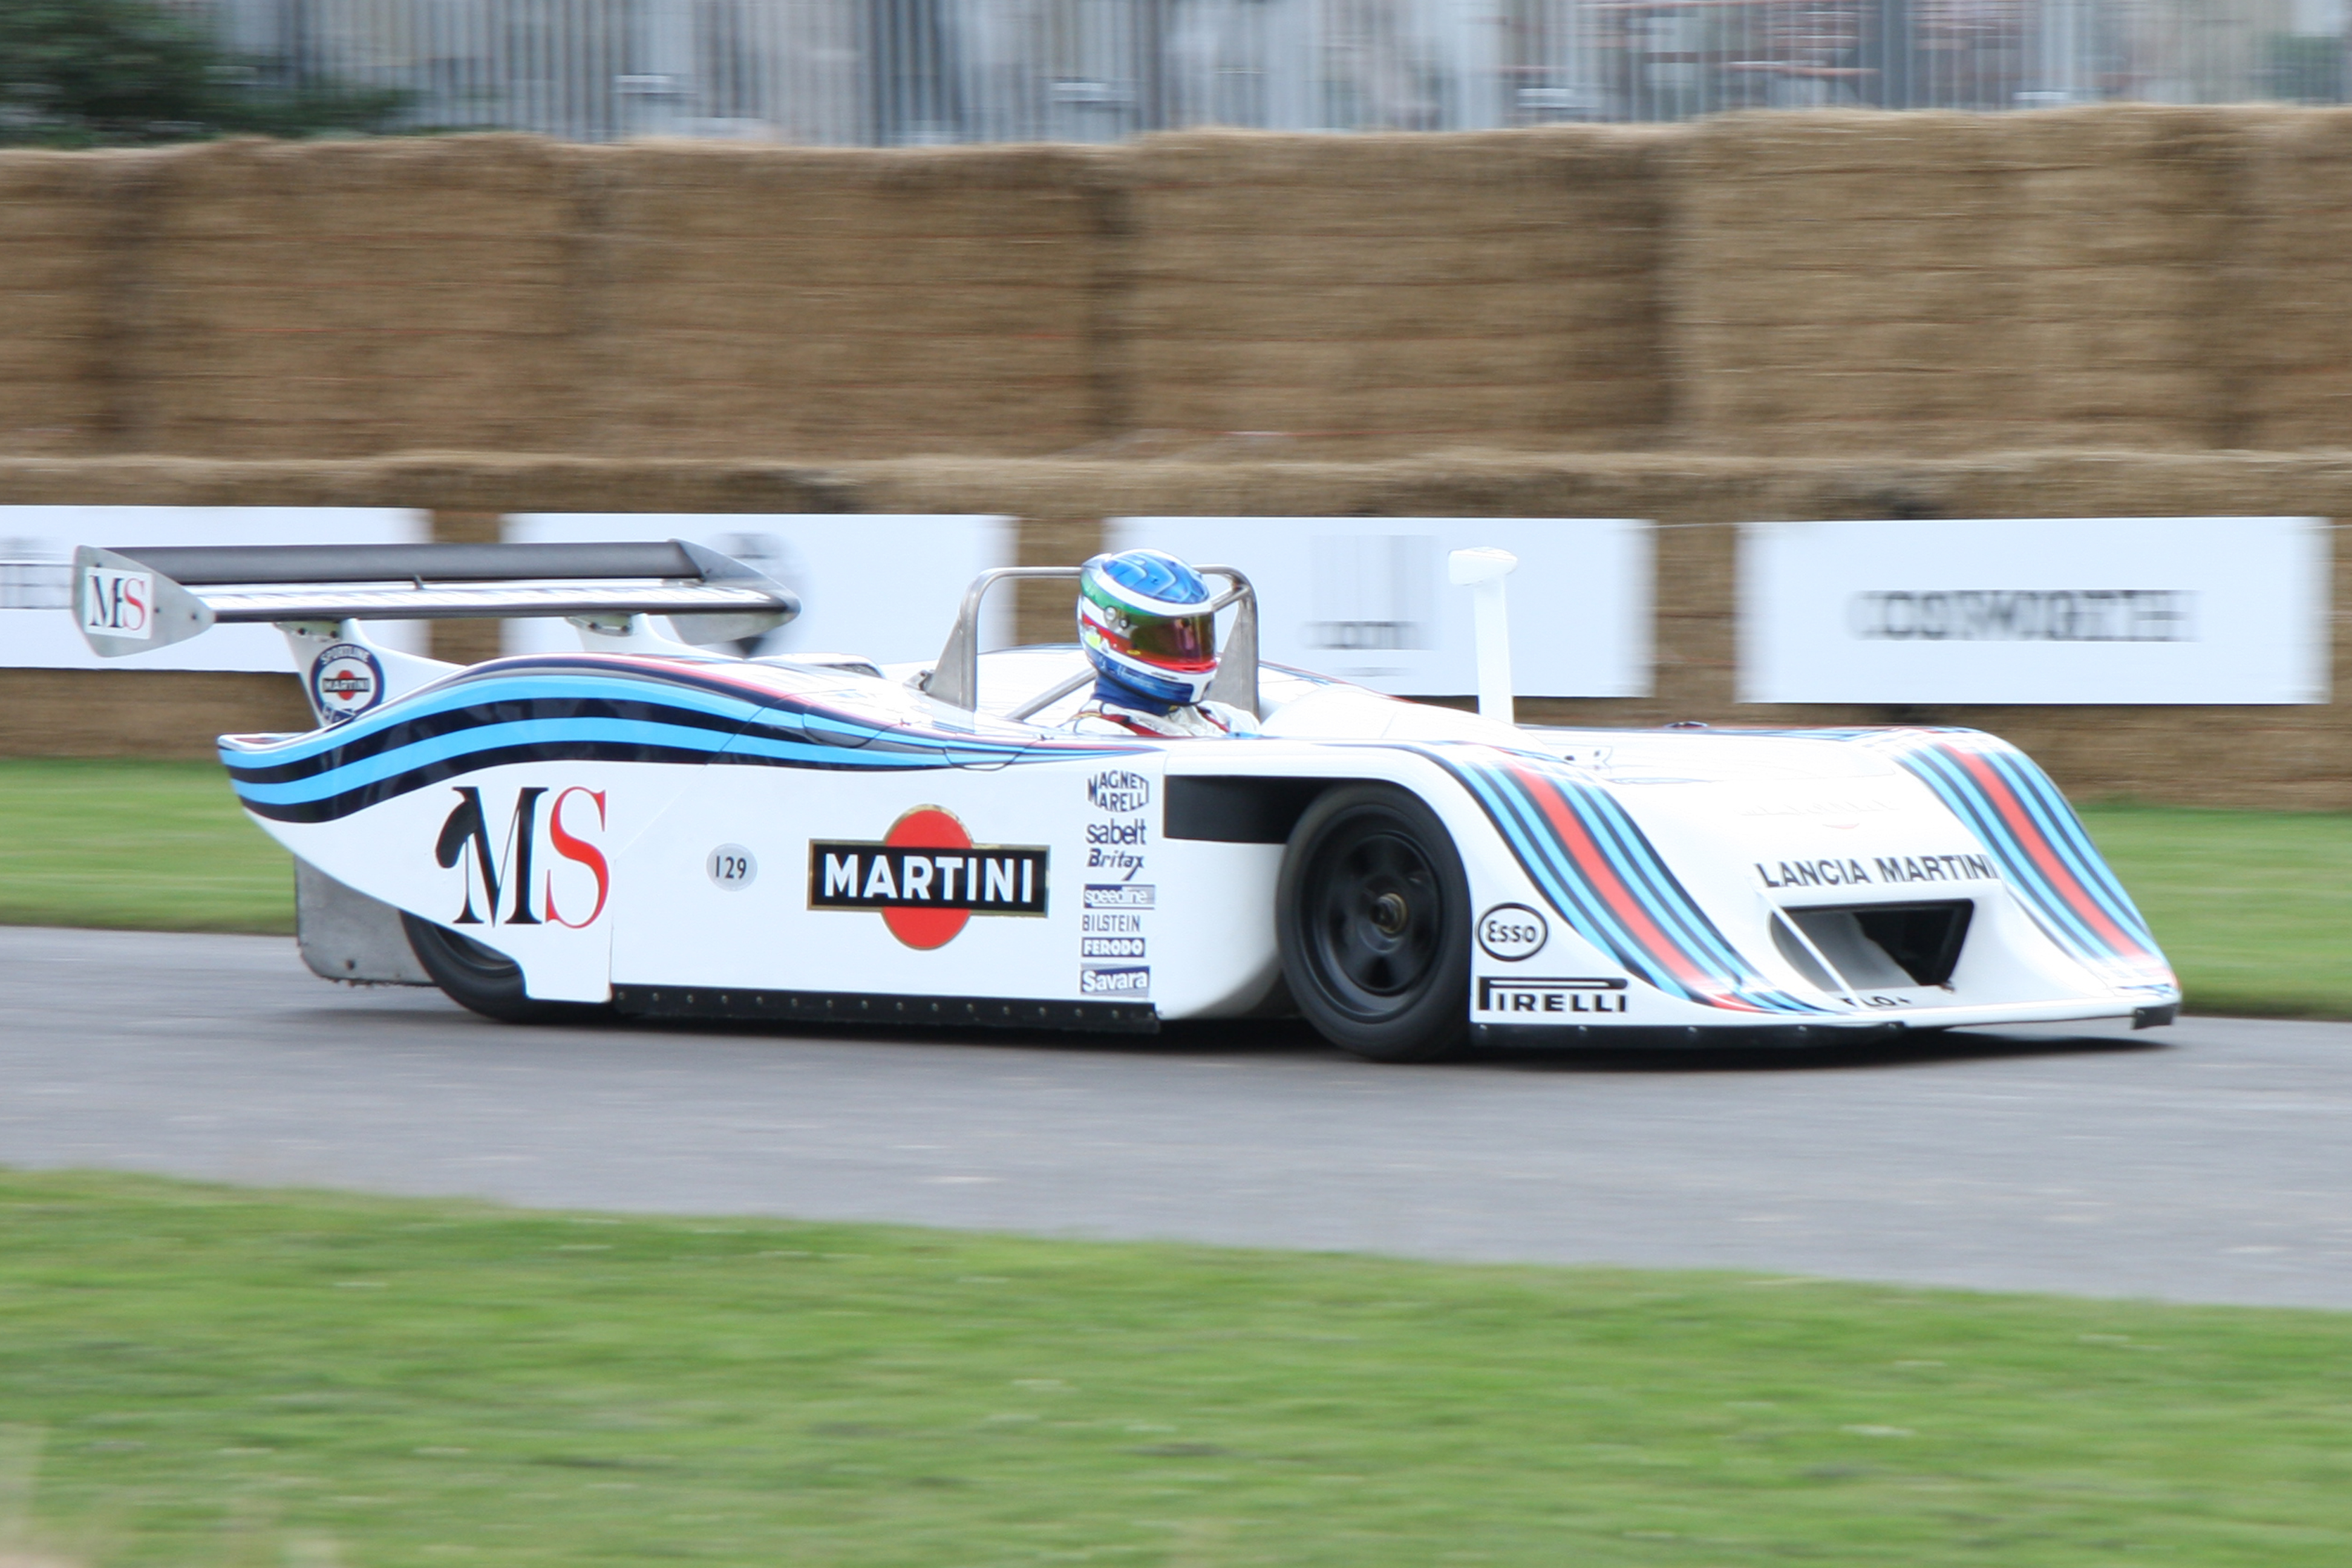 Image [ 10 of 50 ] - Lancia Lc1 Part of Lancia Lc1 Gruppo 6 - New HD ...